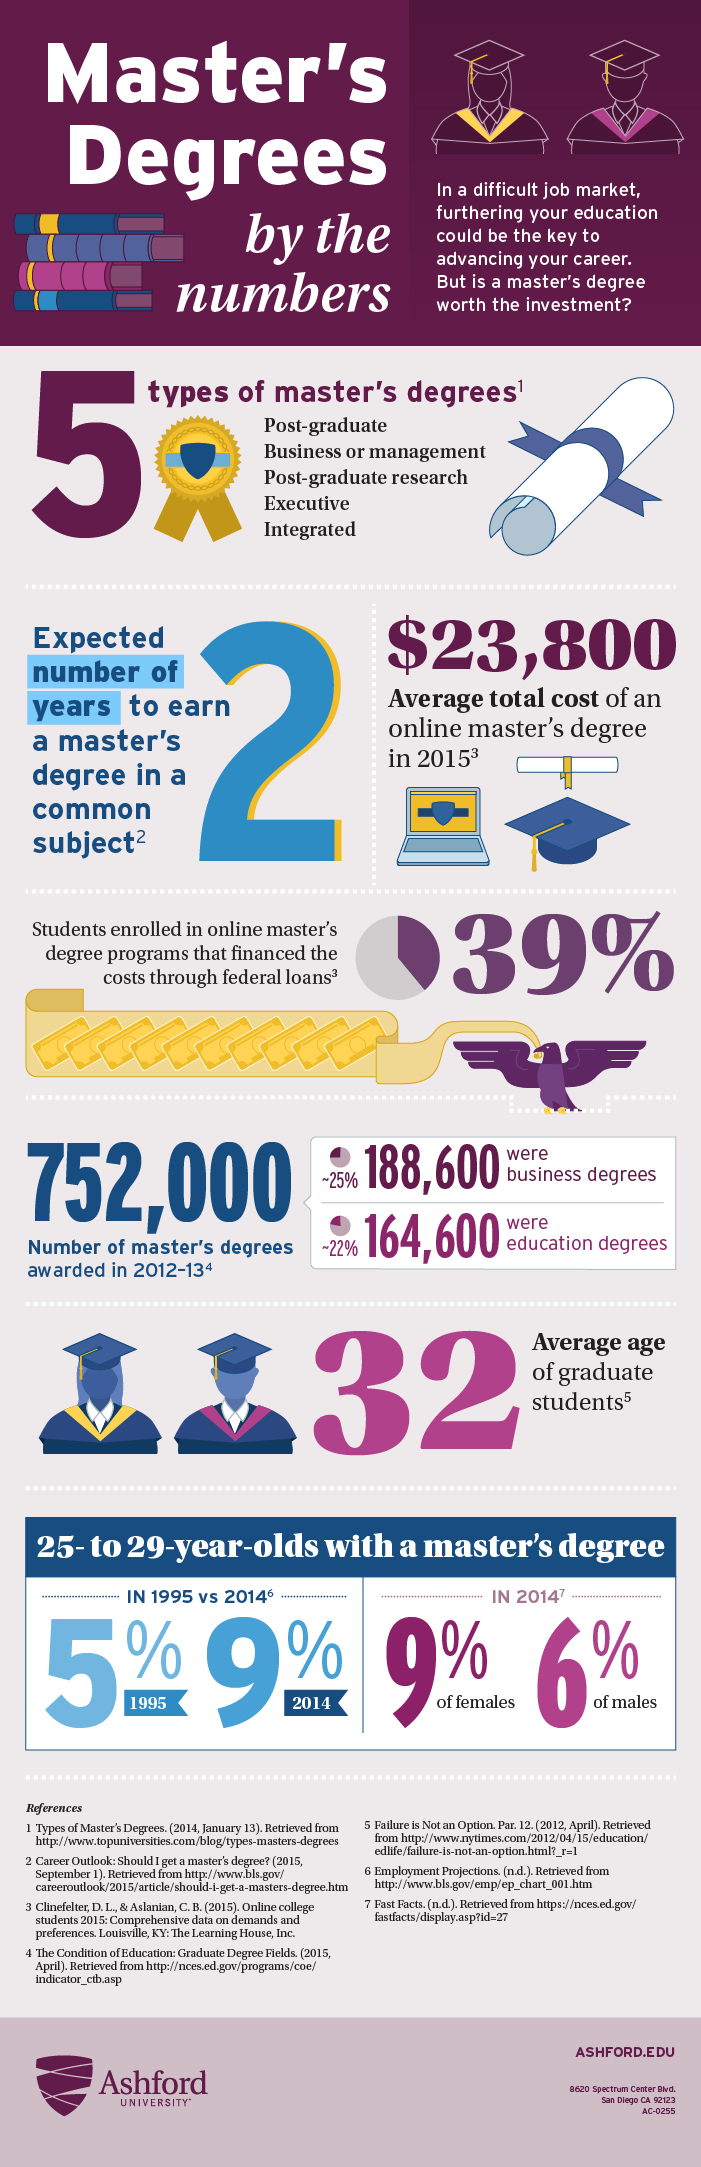 Ashford Univeristy: Master's Degrees by the Numbers infographic